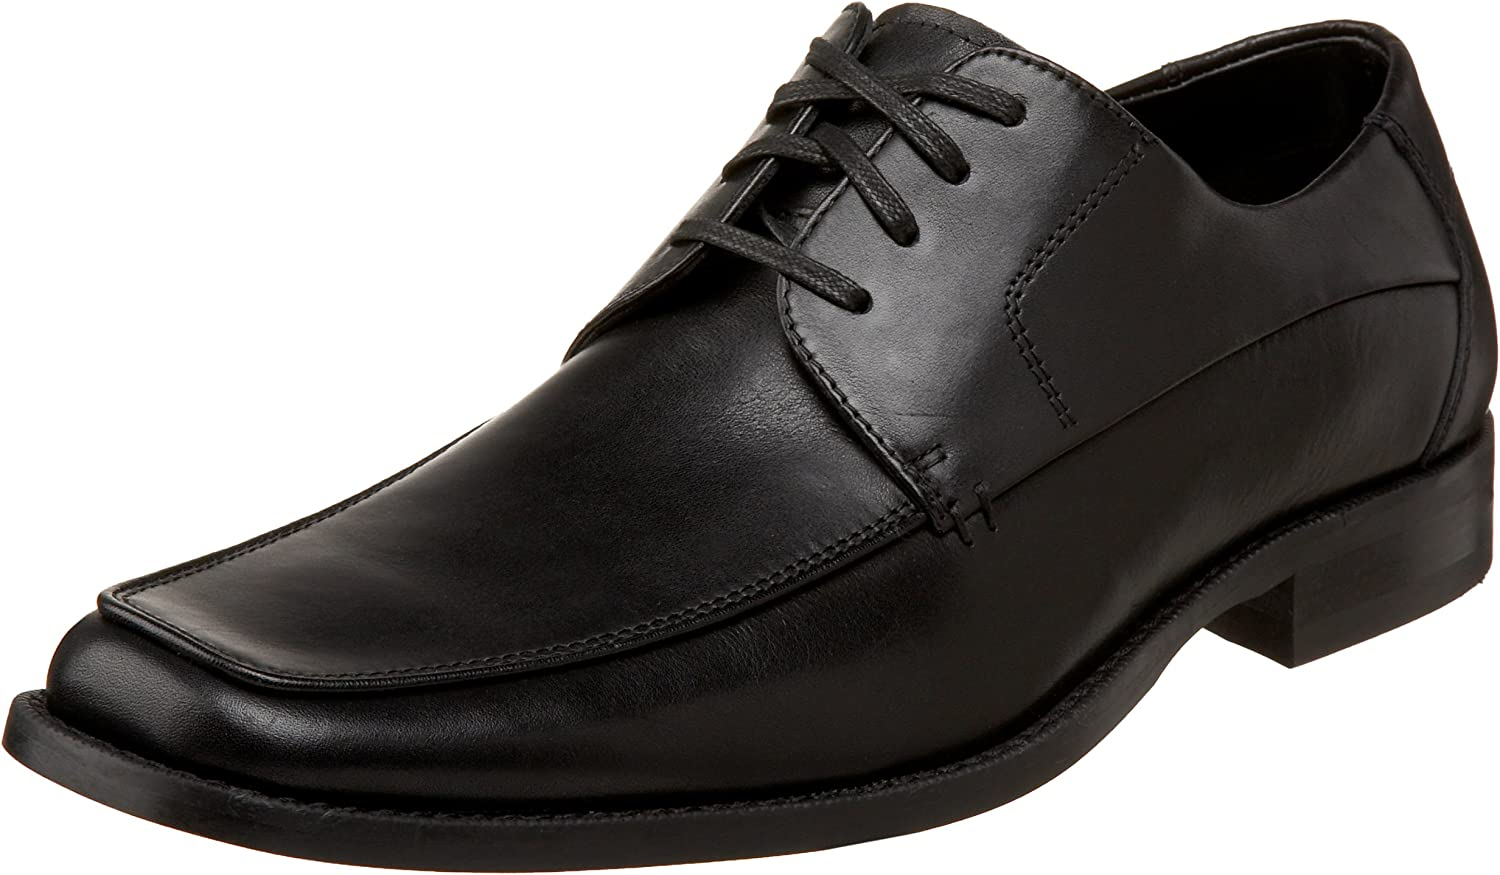 Kenneth Cole New York Men's Count-in on U